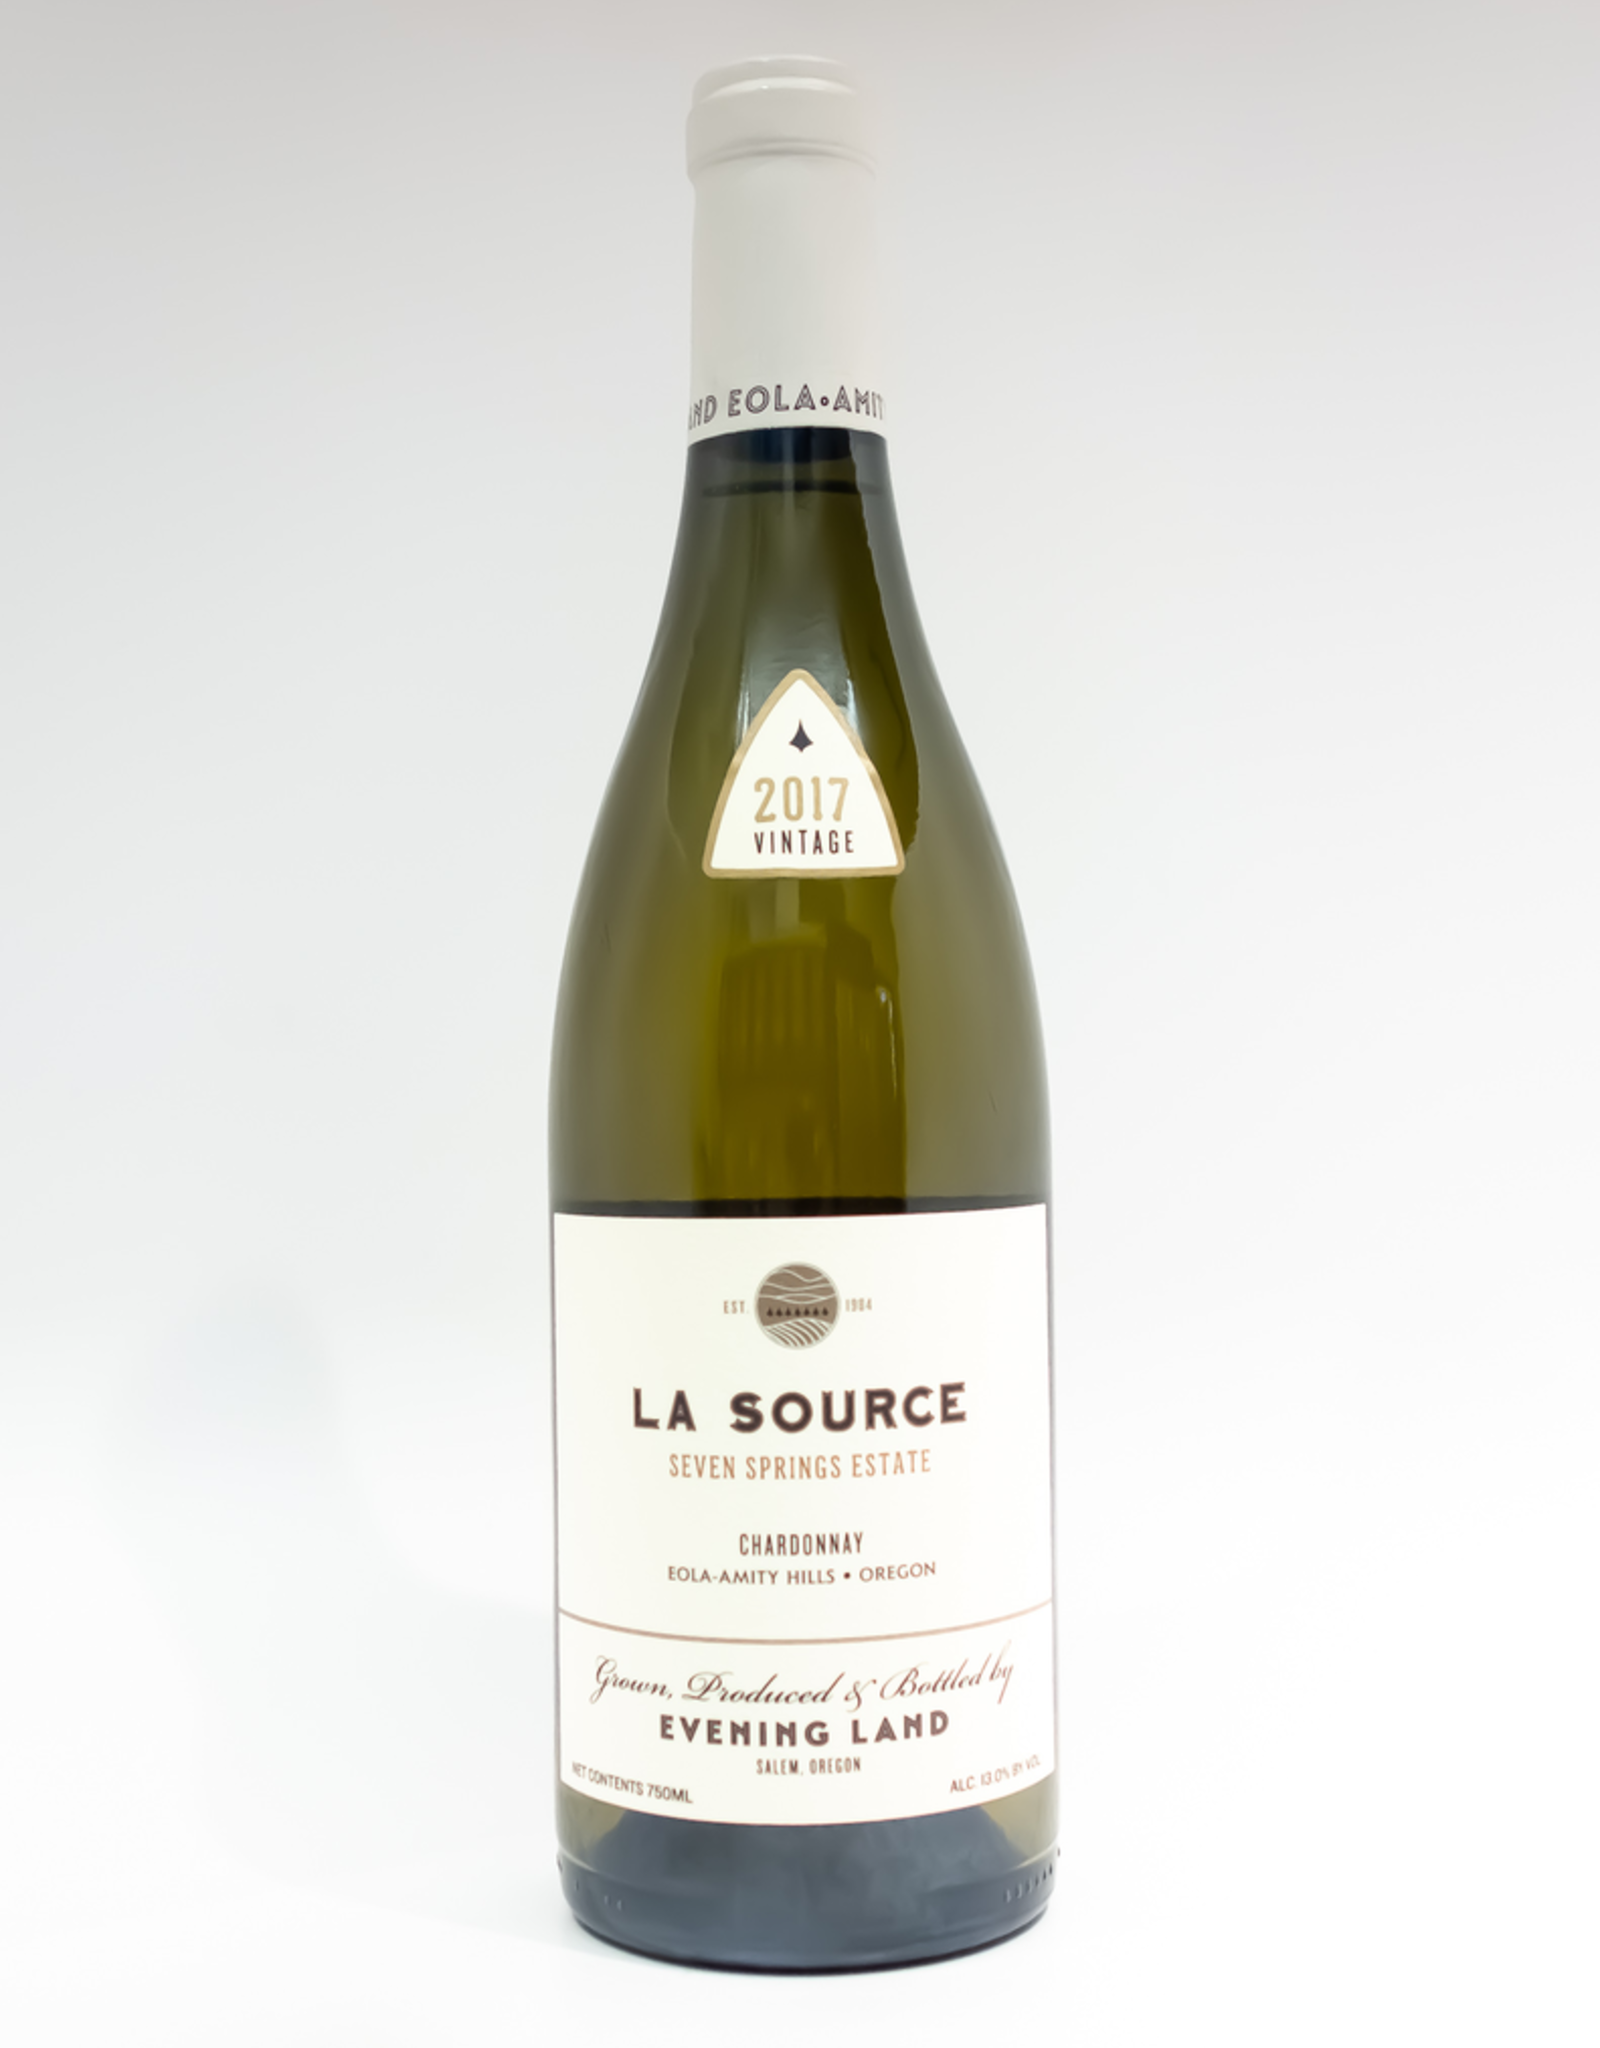 Wine-White-Round Evening Land 'La Source' Chardonnay Seven Springs Estate Eola-Amity Hills 2017